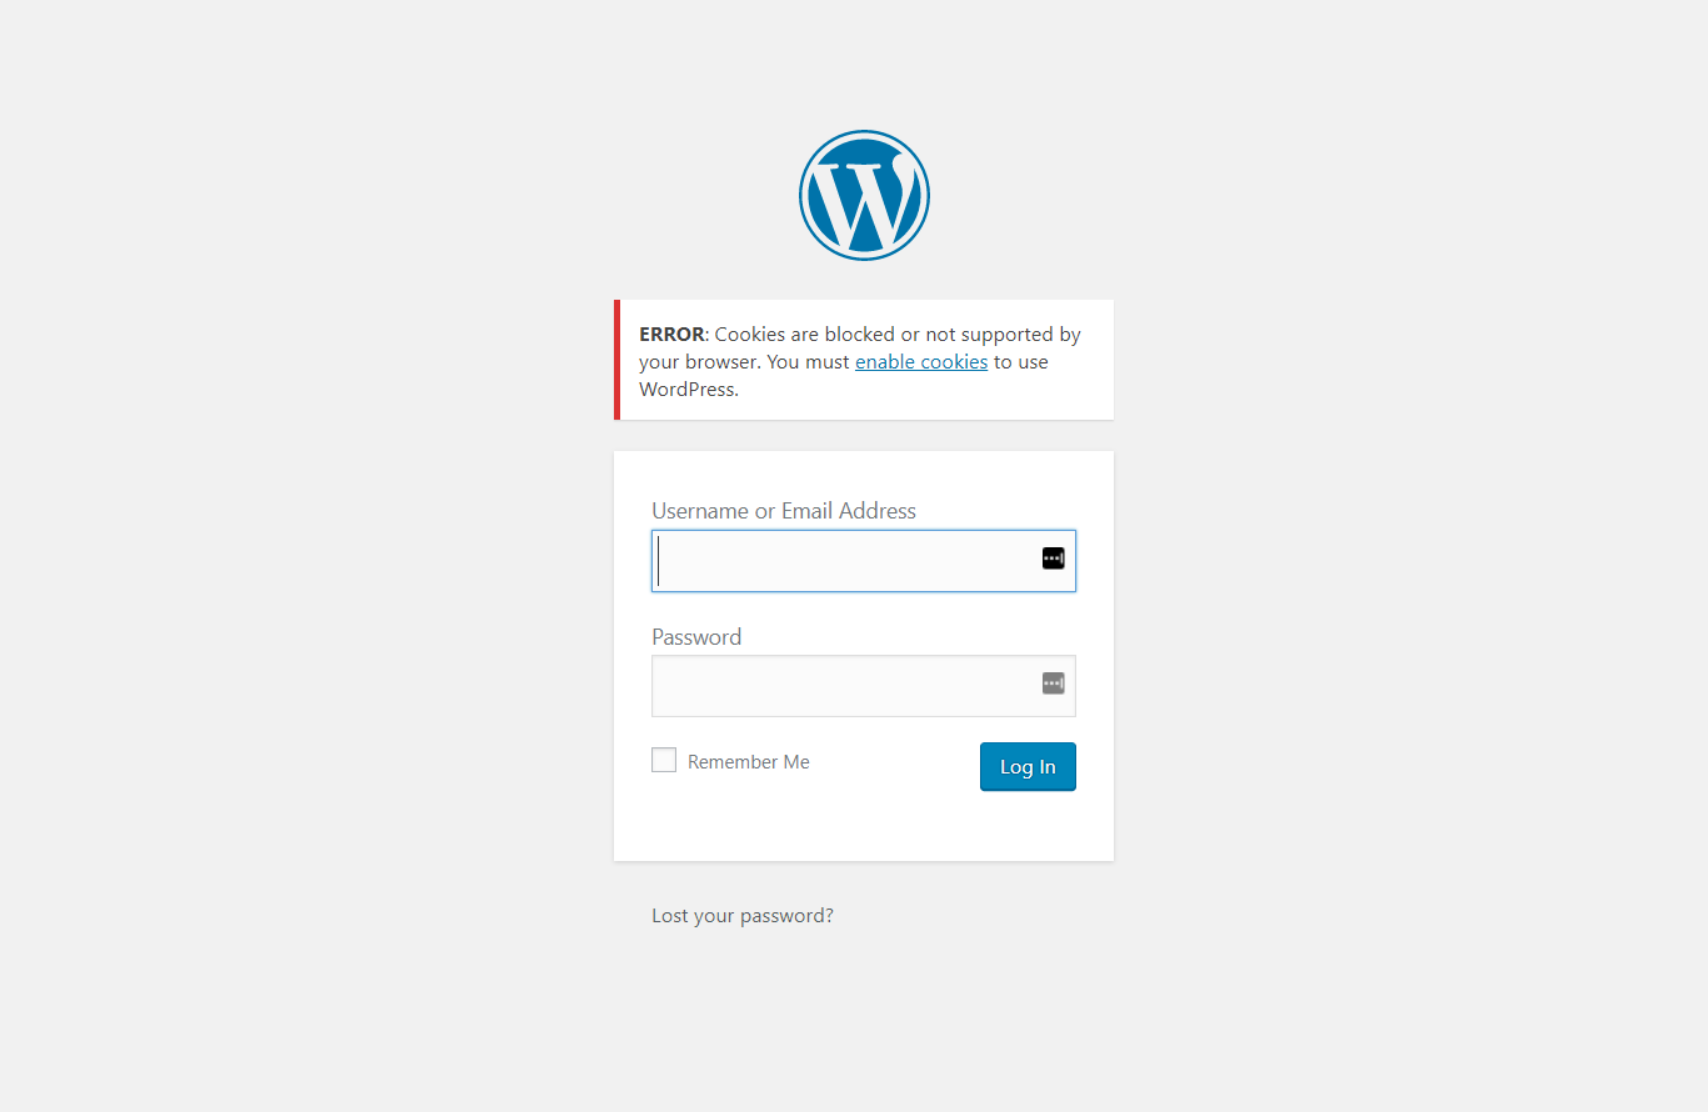 Error message: Cookies are blocked or not supported by your browser. You must enable cookies to use WordPress